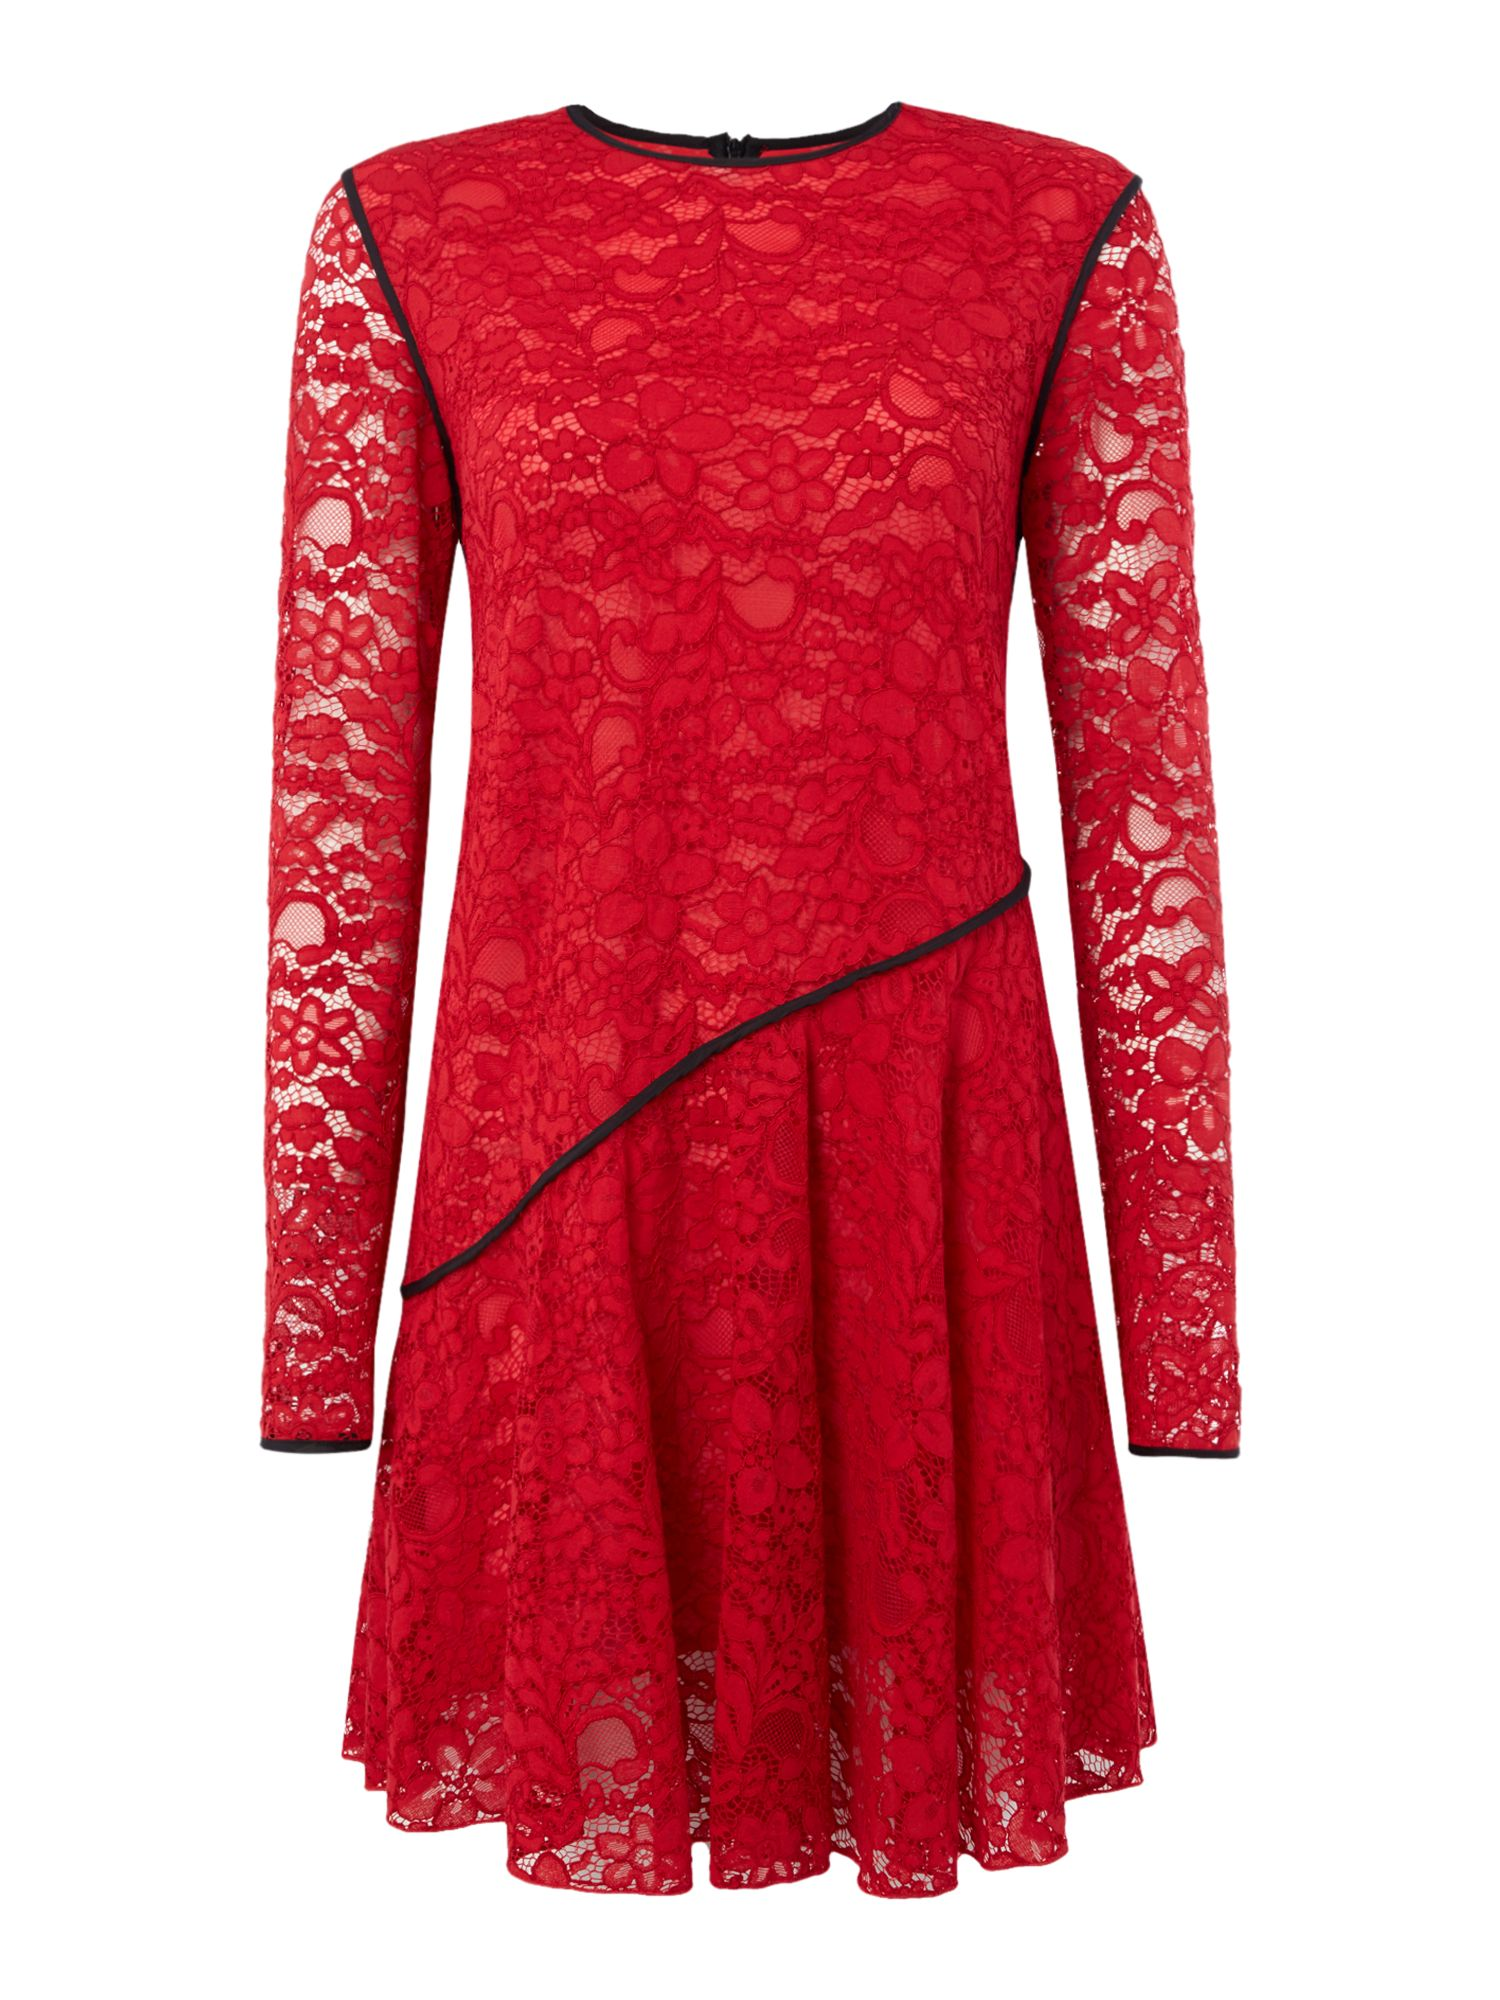 Sportmax Code Bosforo lace dress with contrast piping detail, Red